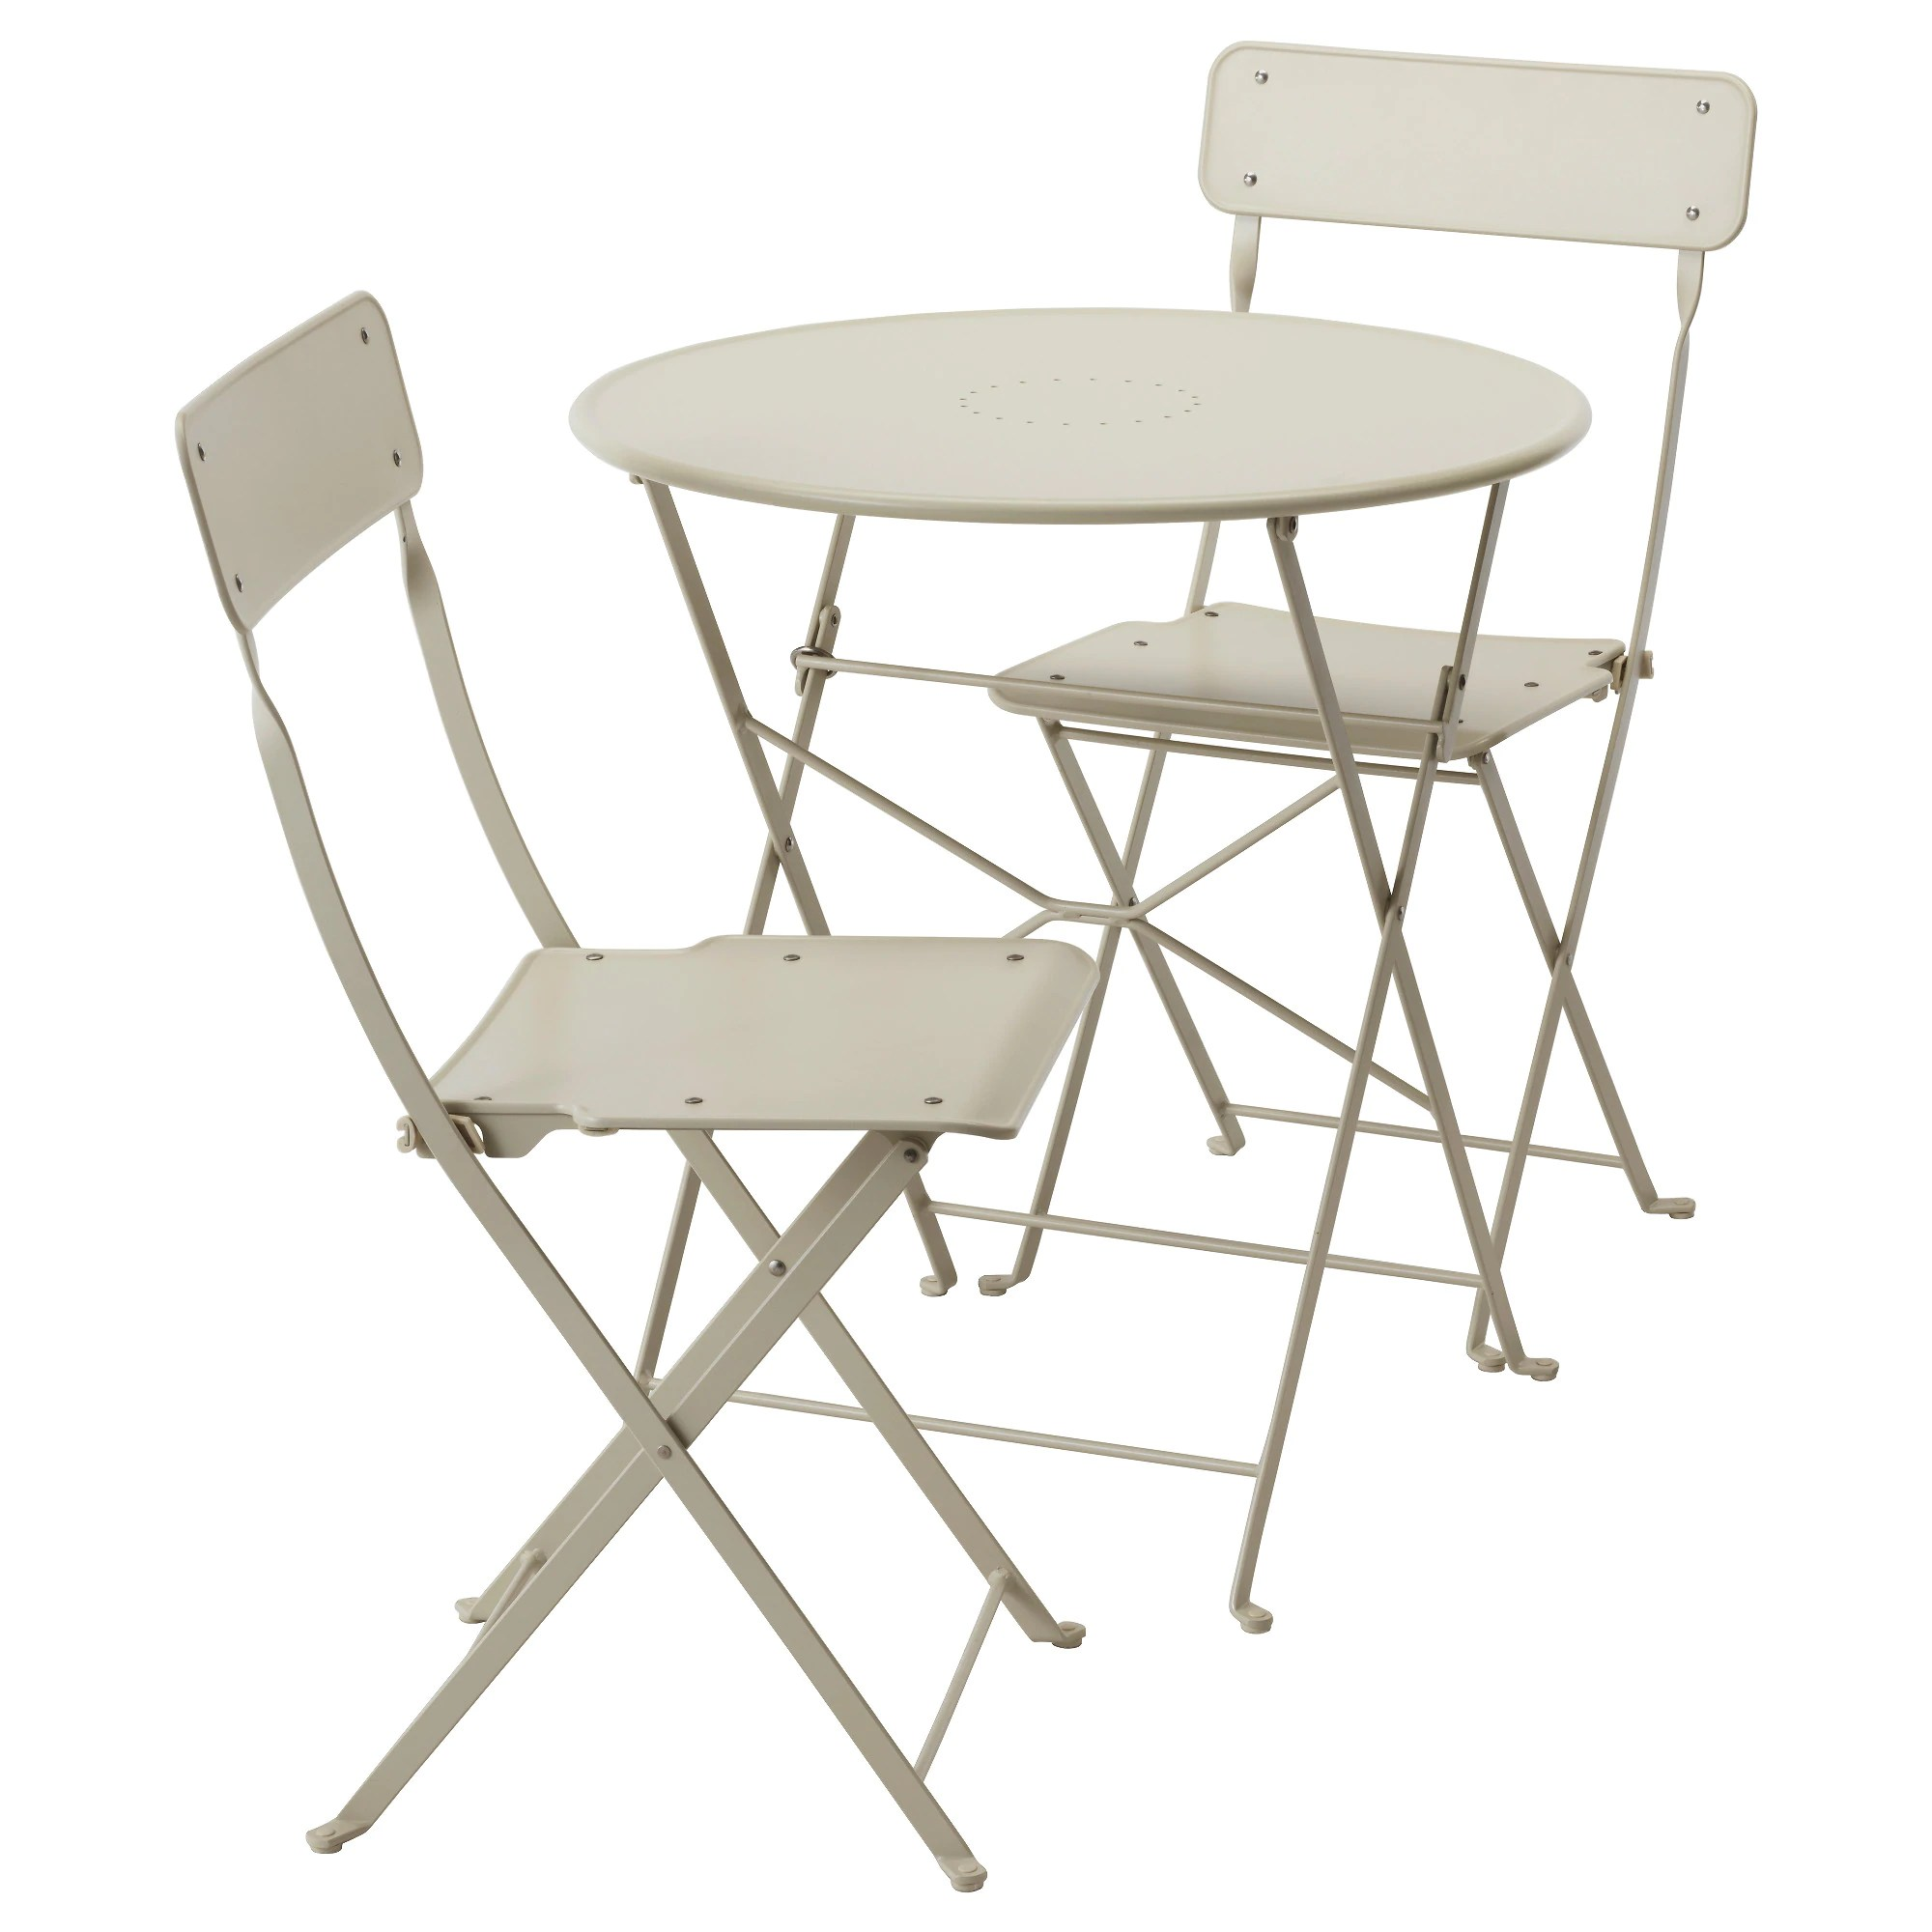 Chairs Folding Saltholmen Table And 2 Folding Chairs Outdoor Beige